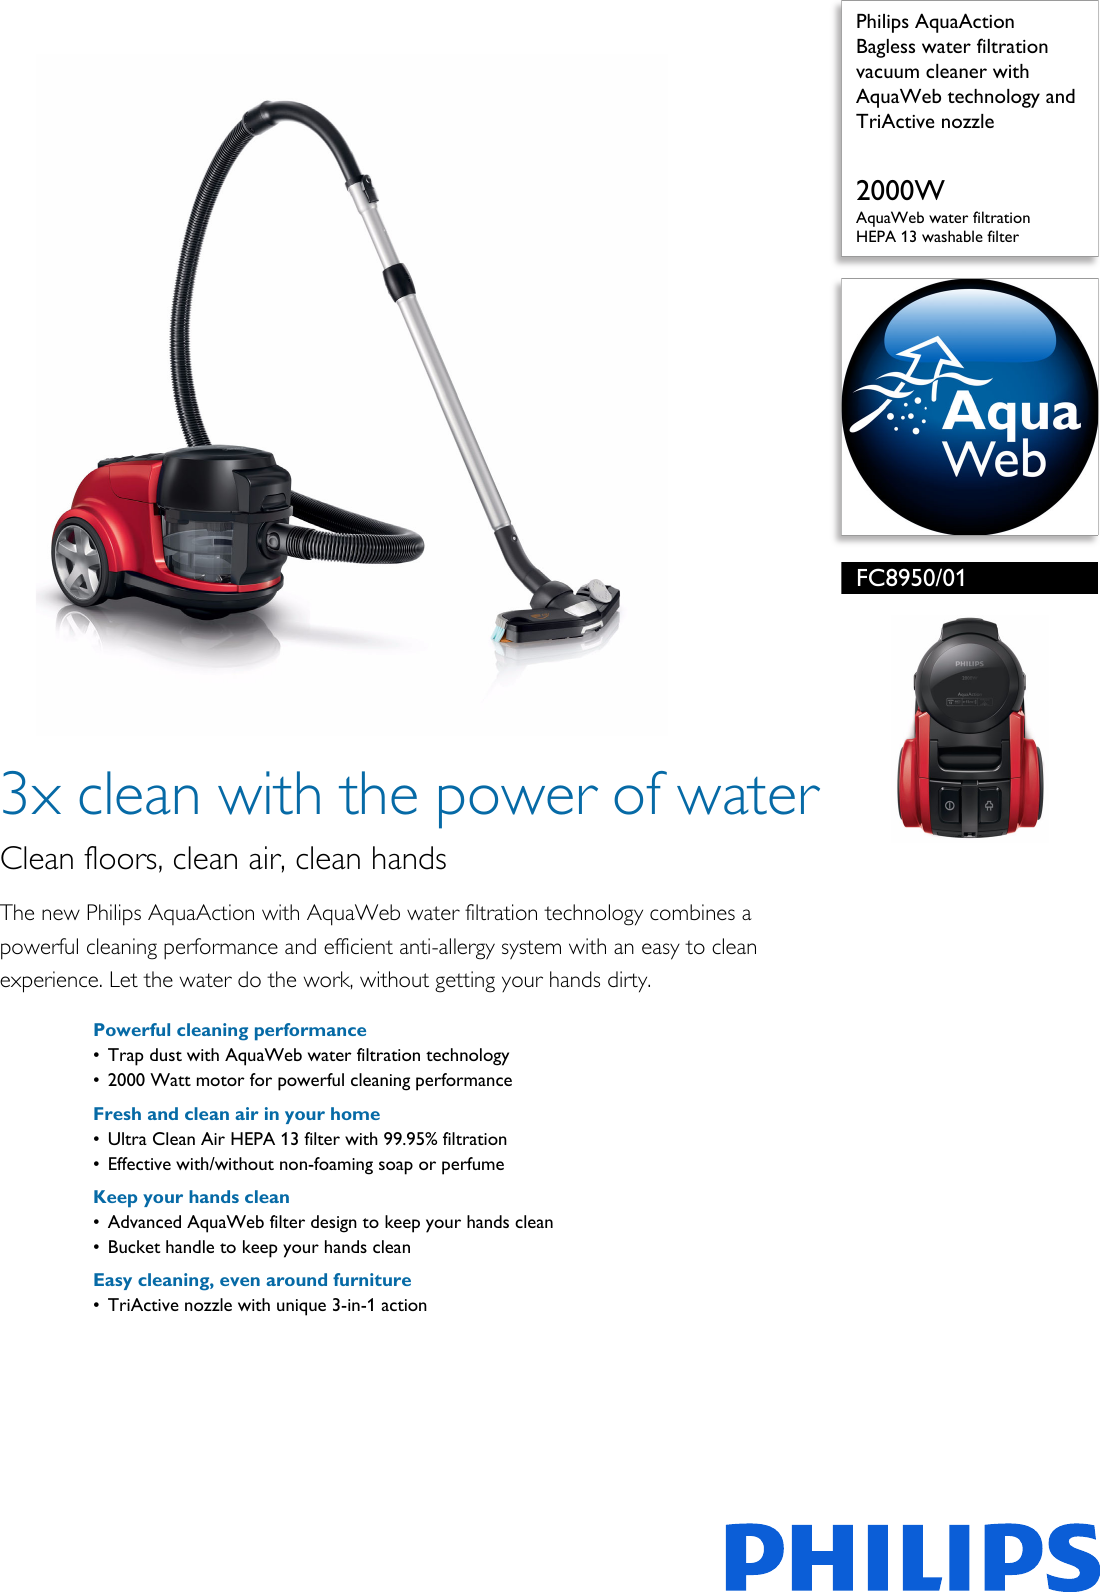 Philips FC8950/01 Bagless Water Filtration Vacuum Cleaner With